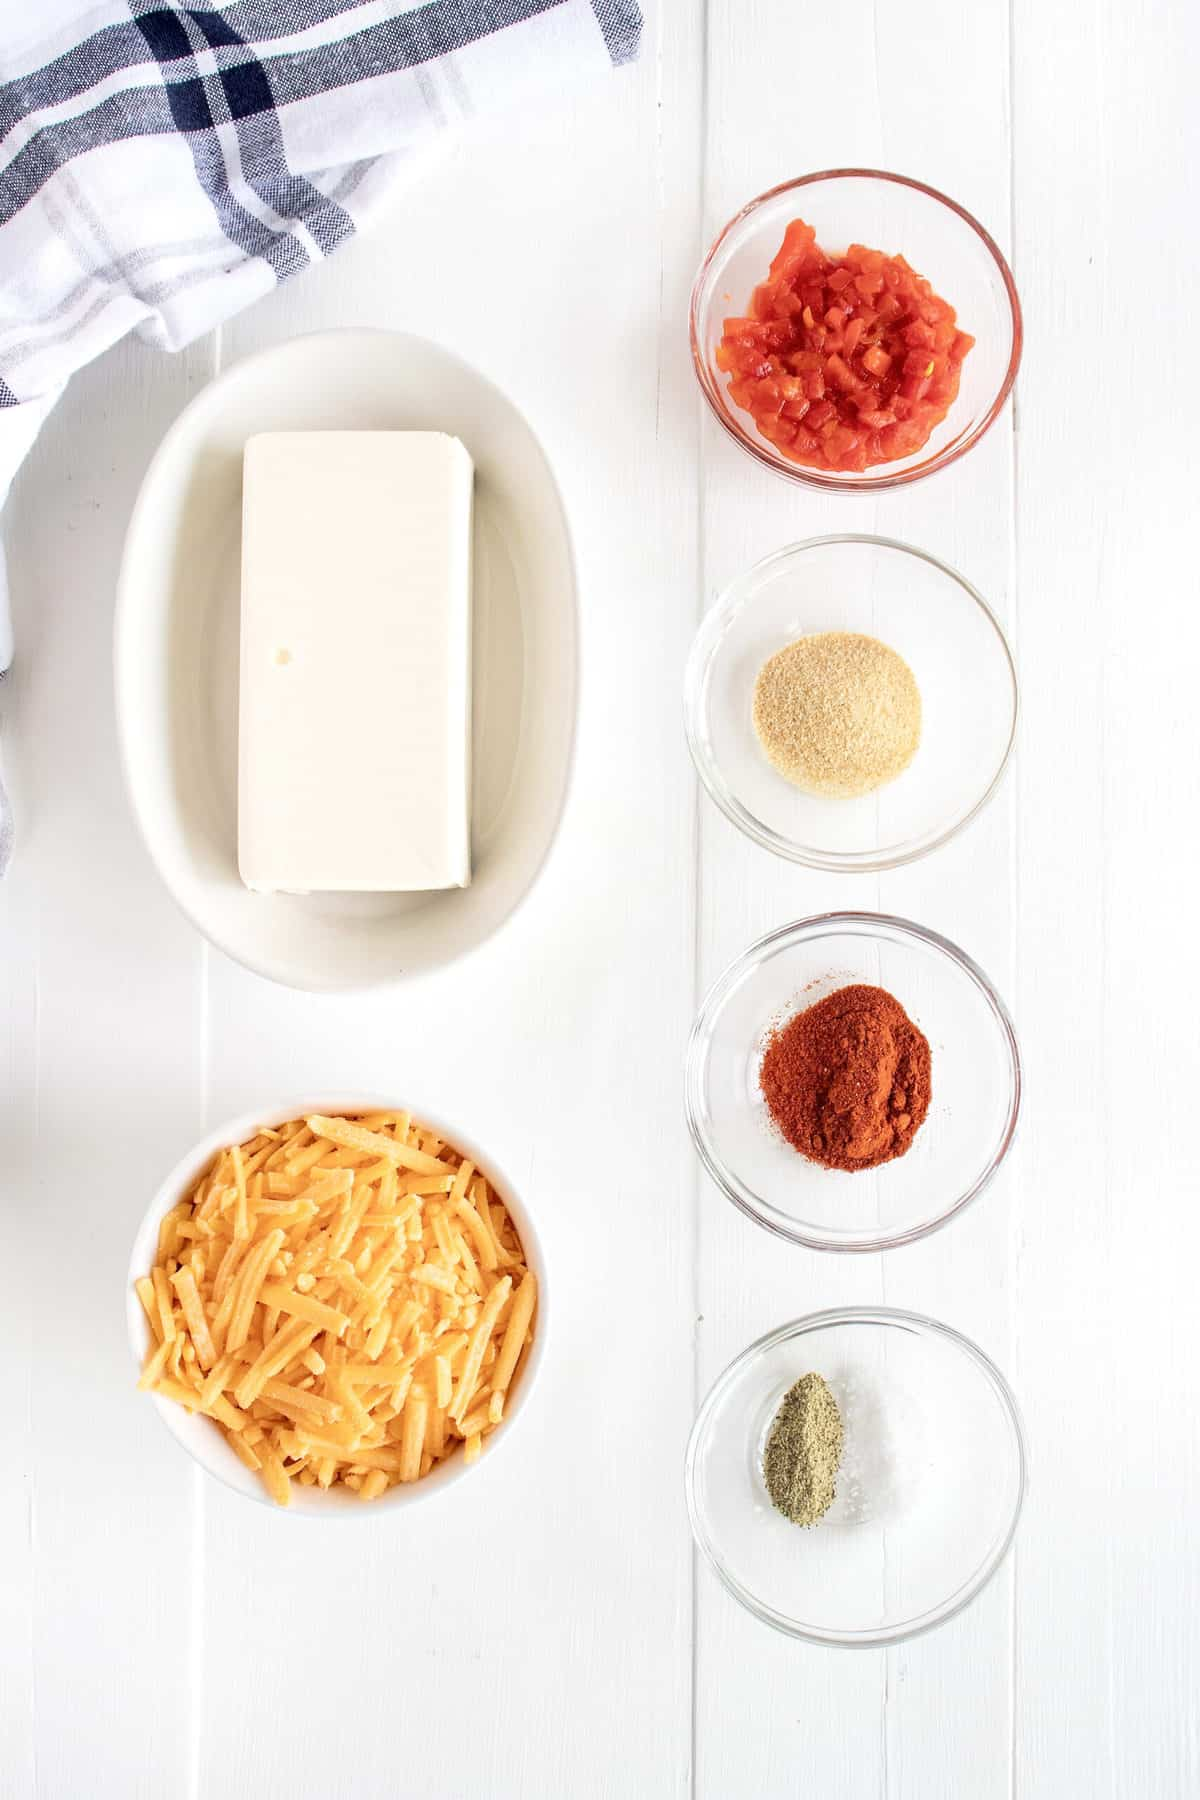 Ingredients for Pimento Cheese Dip by The BakerMama